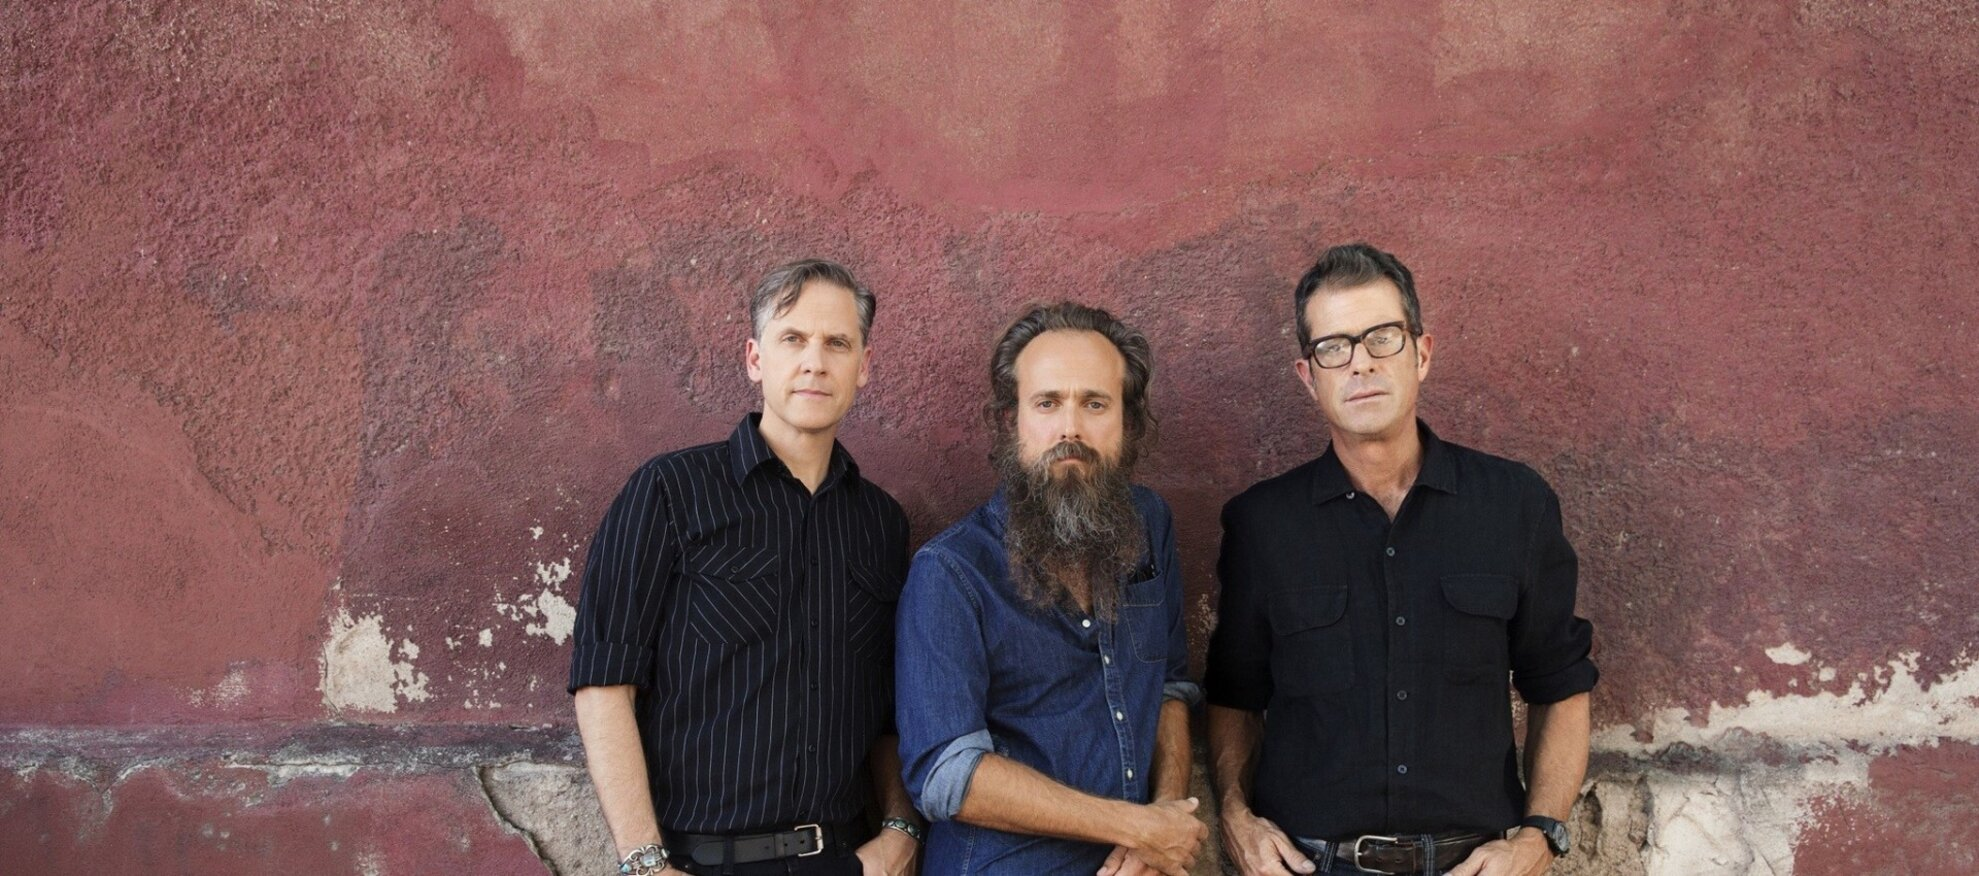 Calexico, Iron & Wine (US)